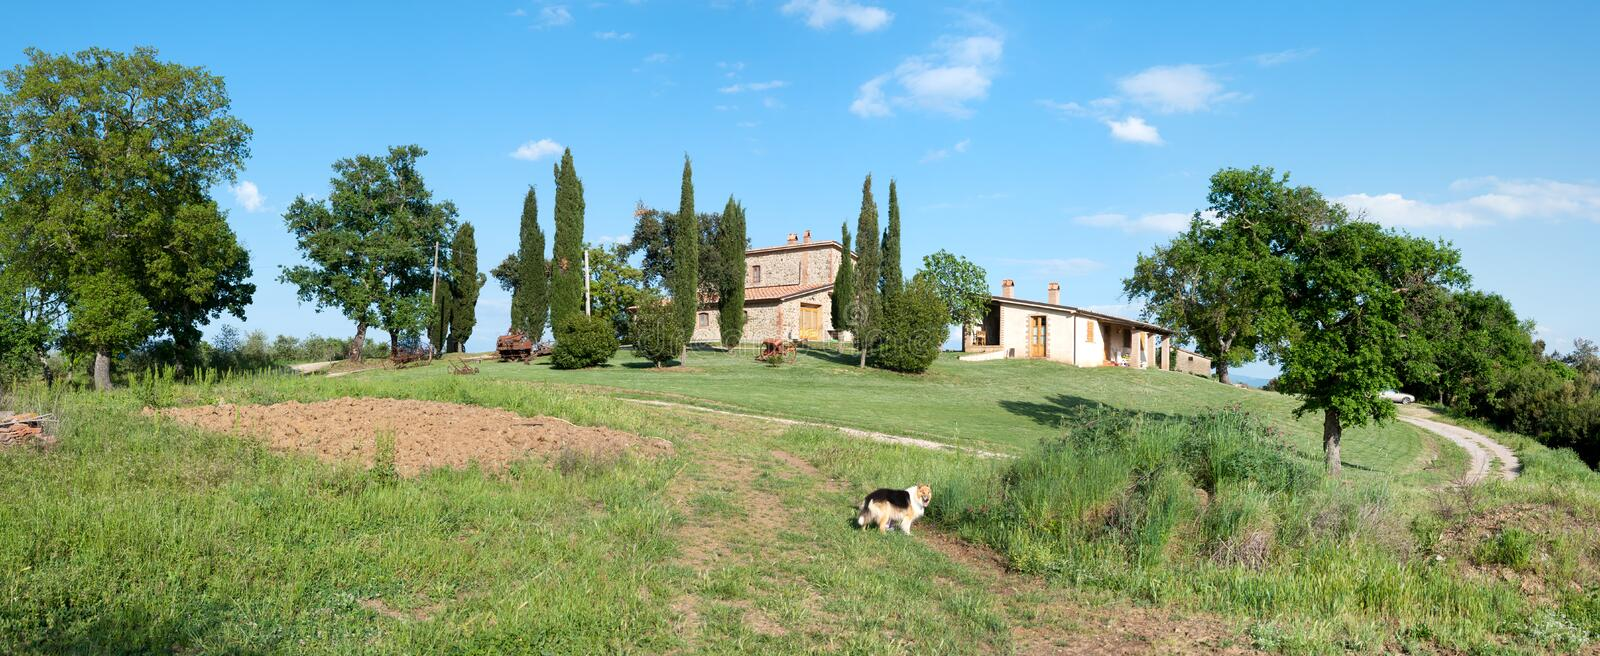 Rustic in Grosseto. Overview of a hill with cottages in Grosseto stock photo